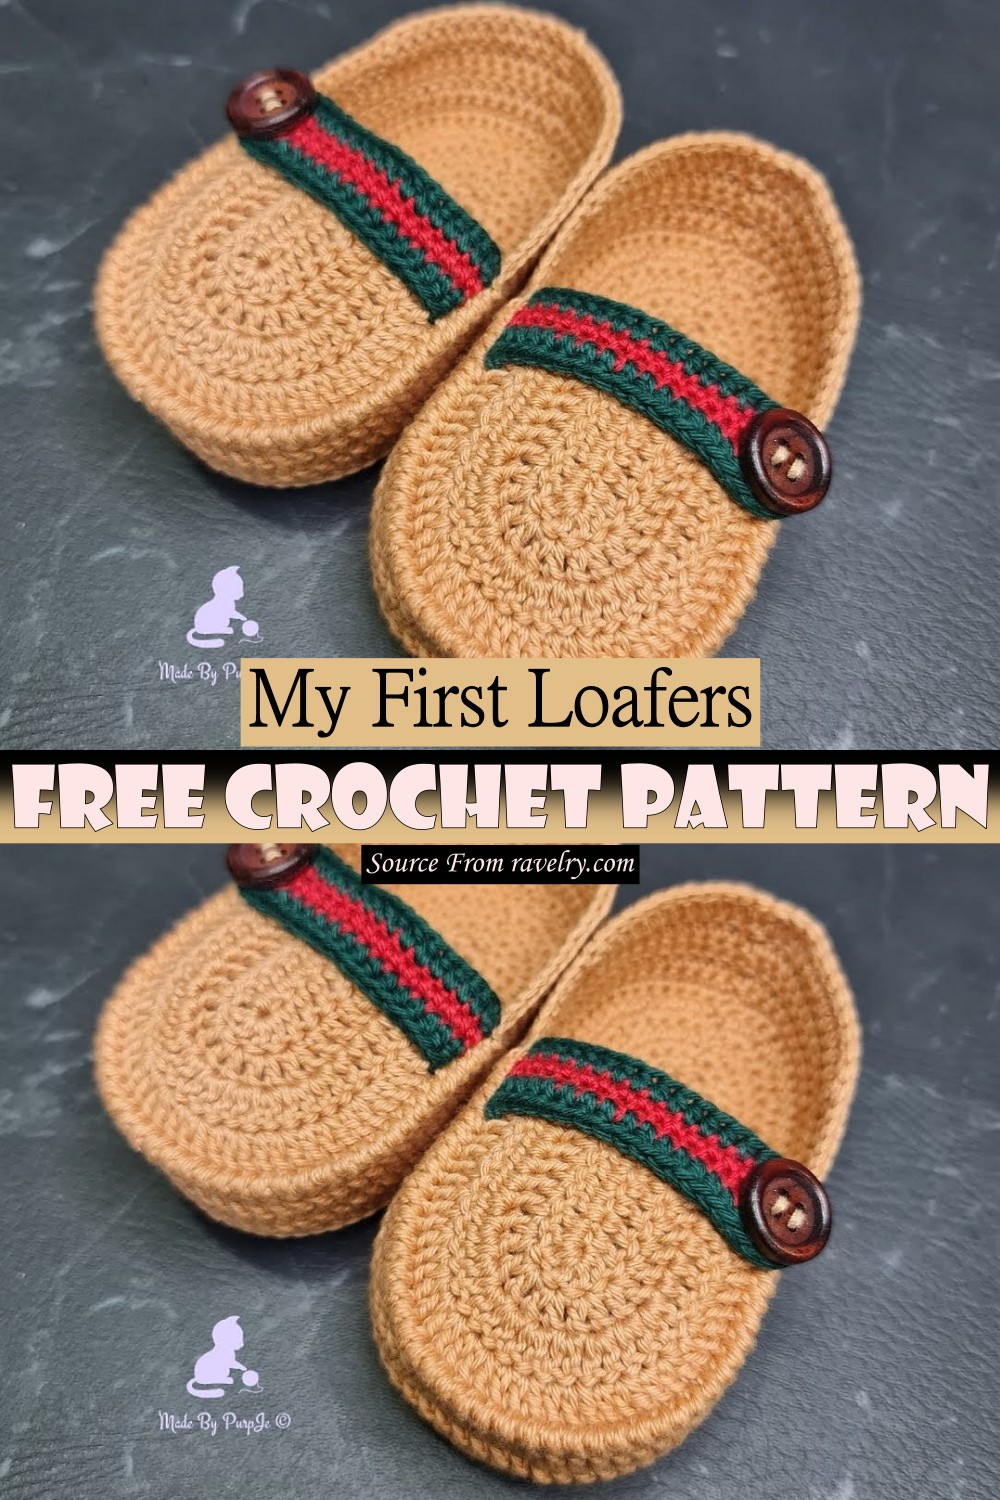 Crochet My First Loafers Pattern